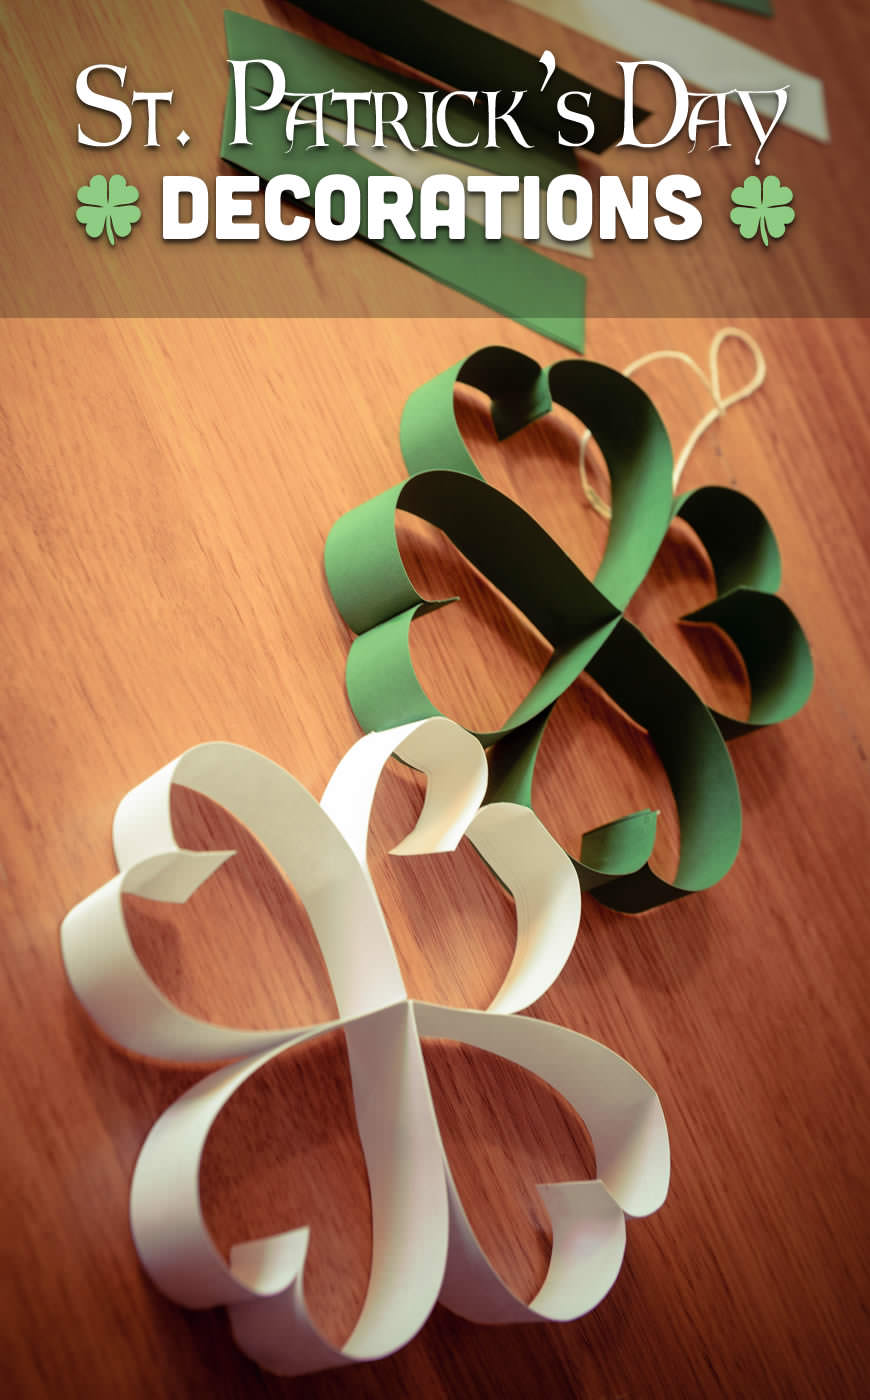 Make your own beautiful hanging shamrock decorations!